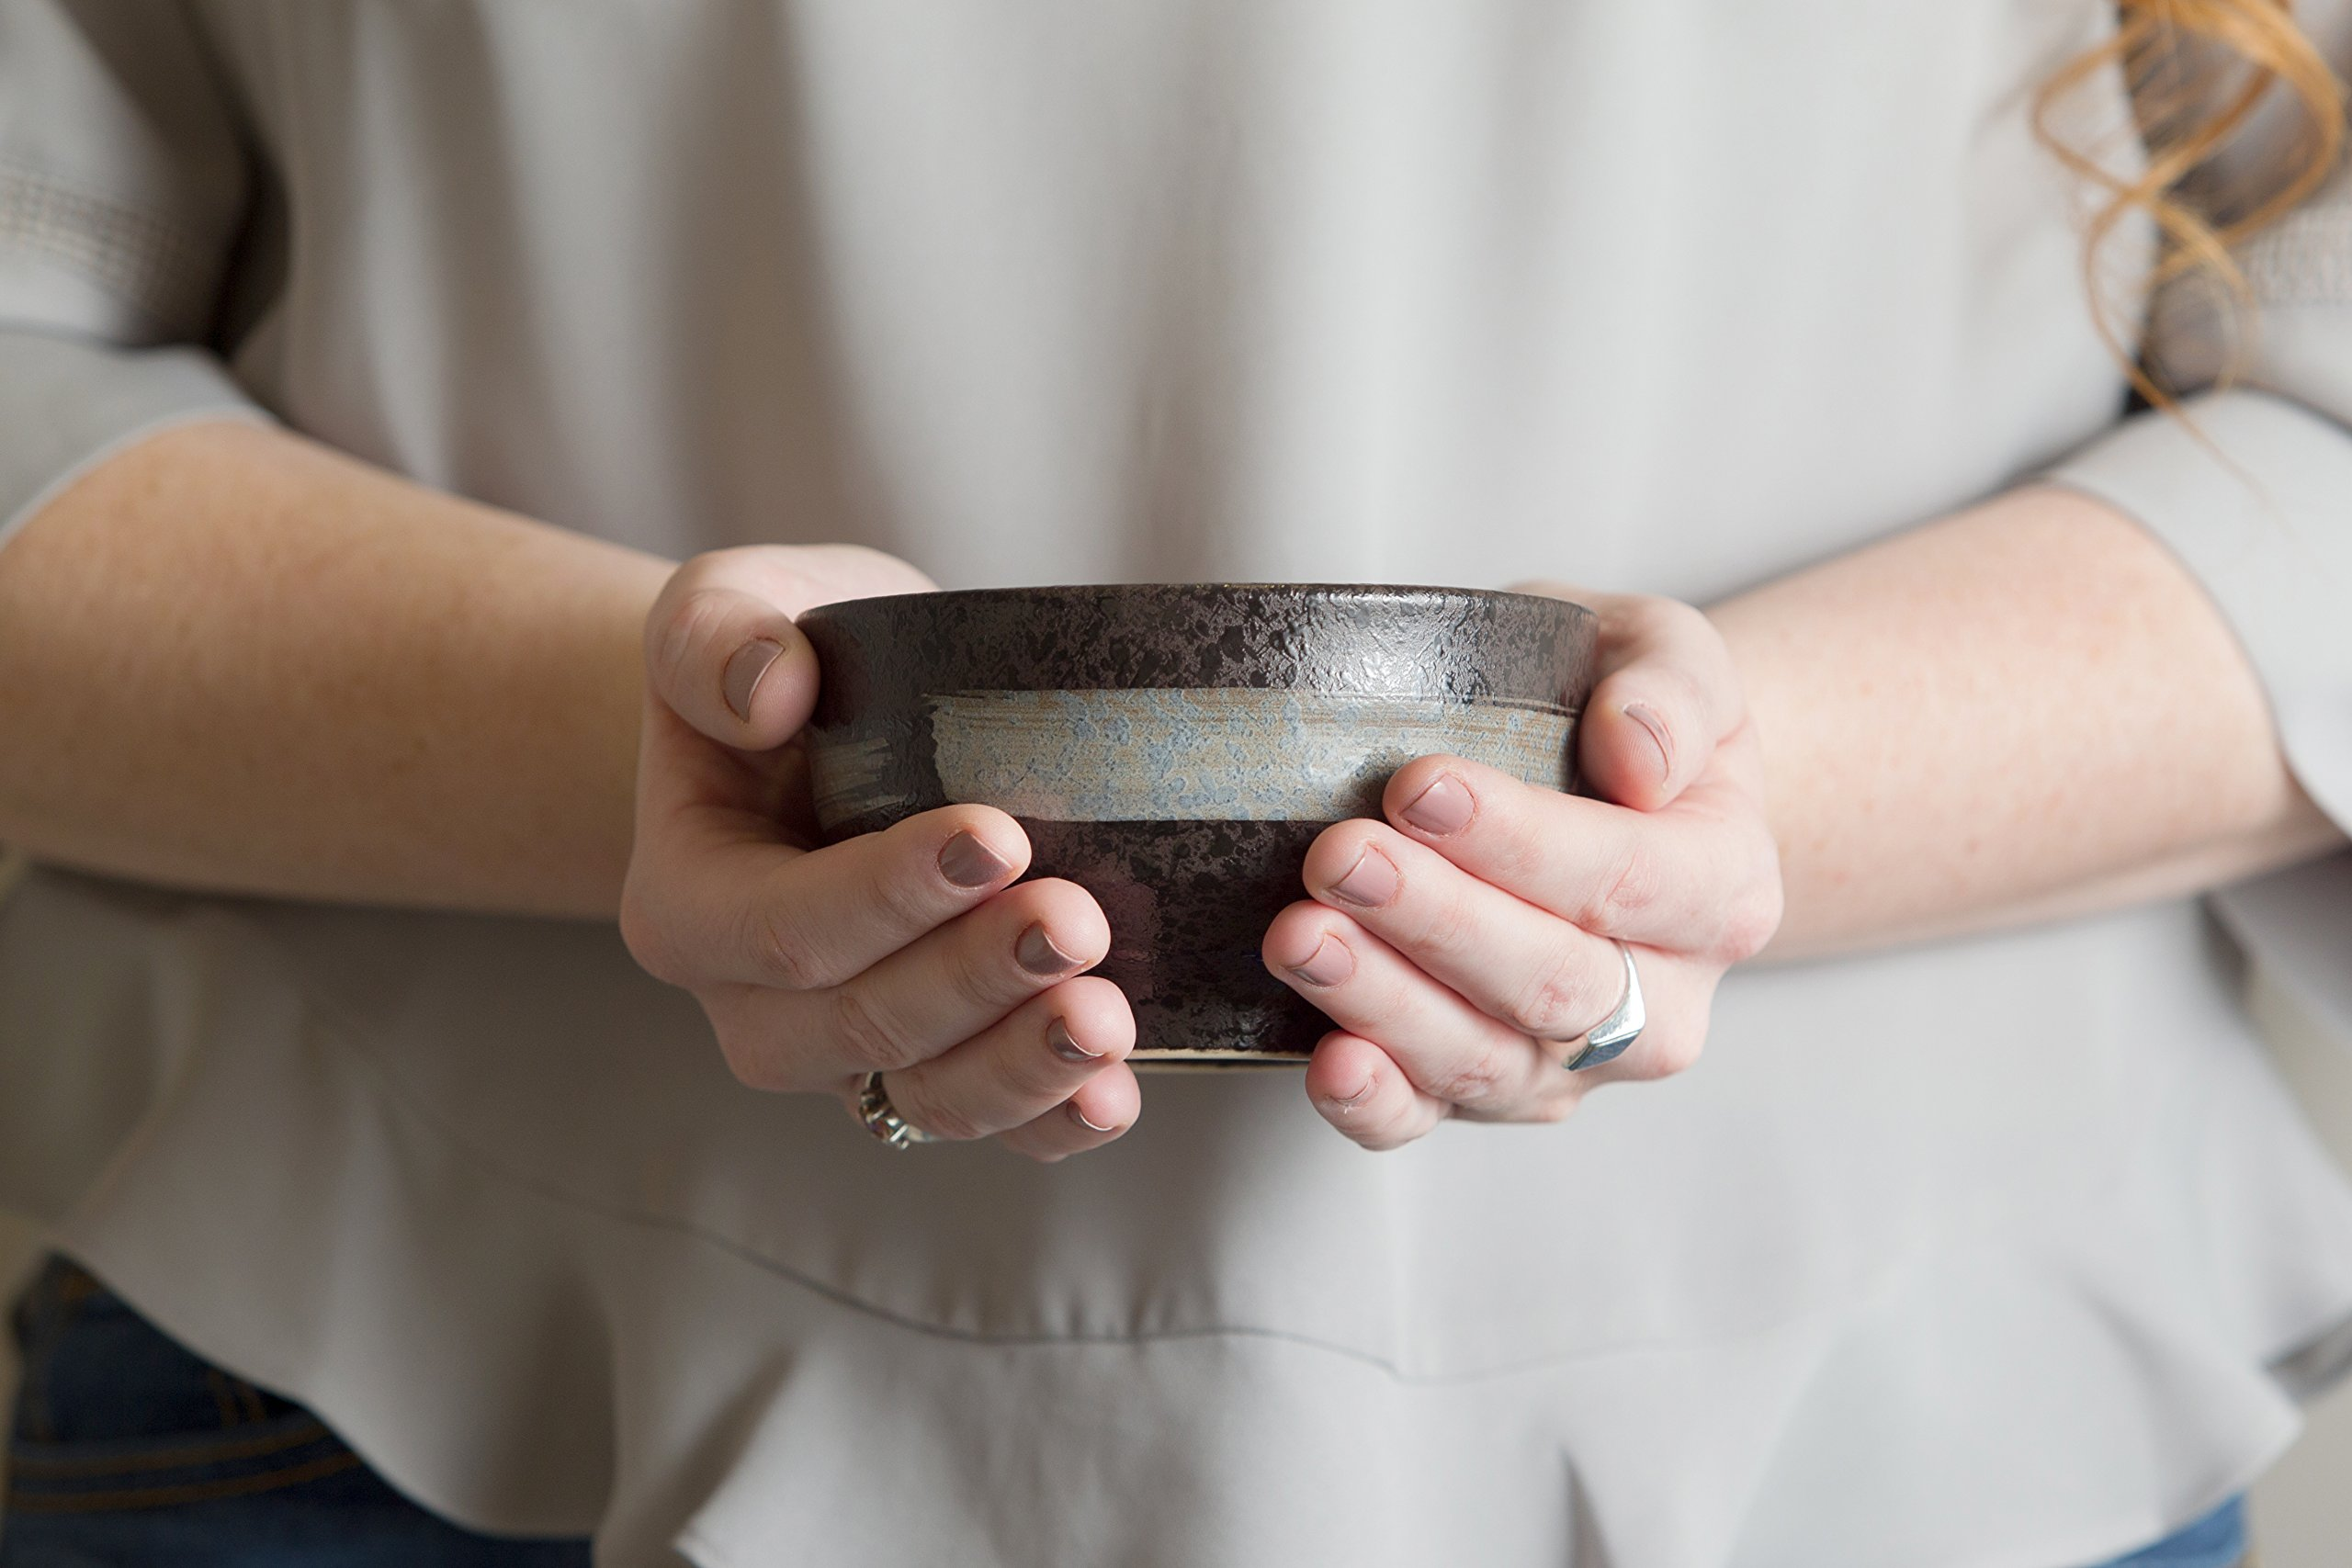 Crazy Dave's Matcha, Handcrafted Nagoya Matcha Bowl, Tea Ceremony Chawan, Tenmoku Glaze Edition, 300 Ml (10 Ounces), Dark Brown with a Single Hand Brushed White Swirl Painted on the Outside. by Crazy Dave's Matcha (Image #3)